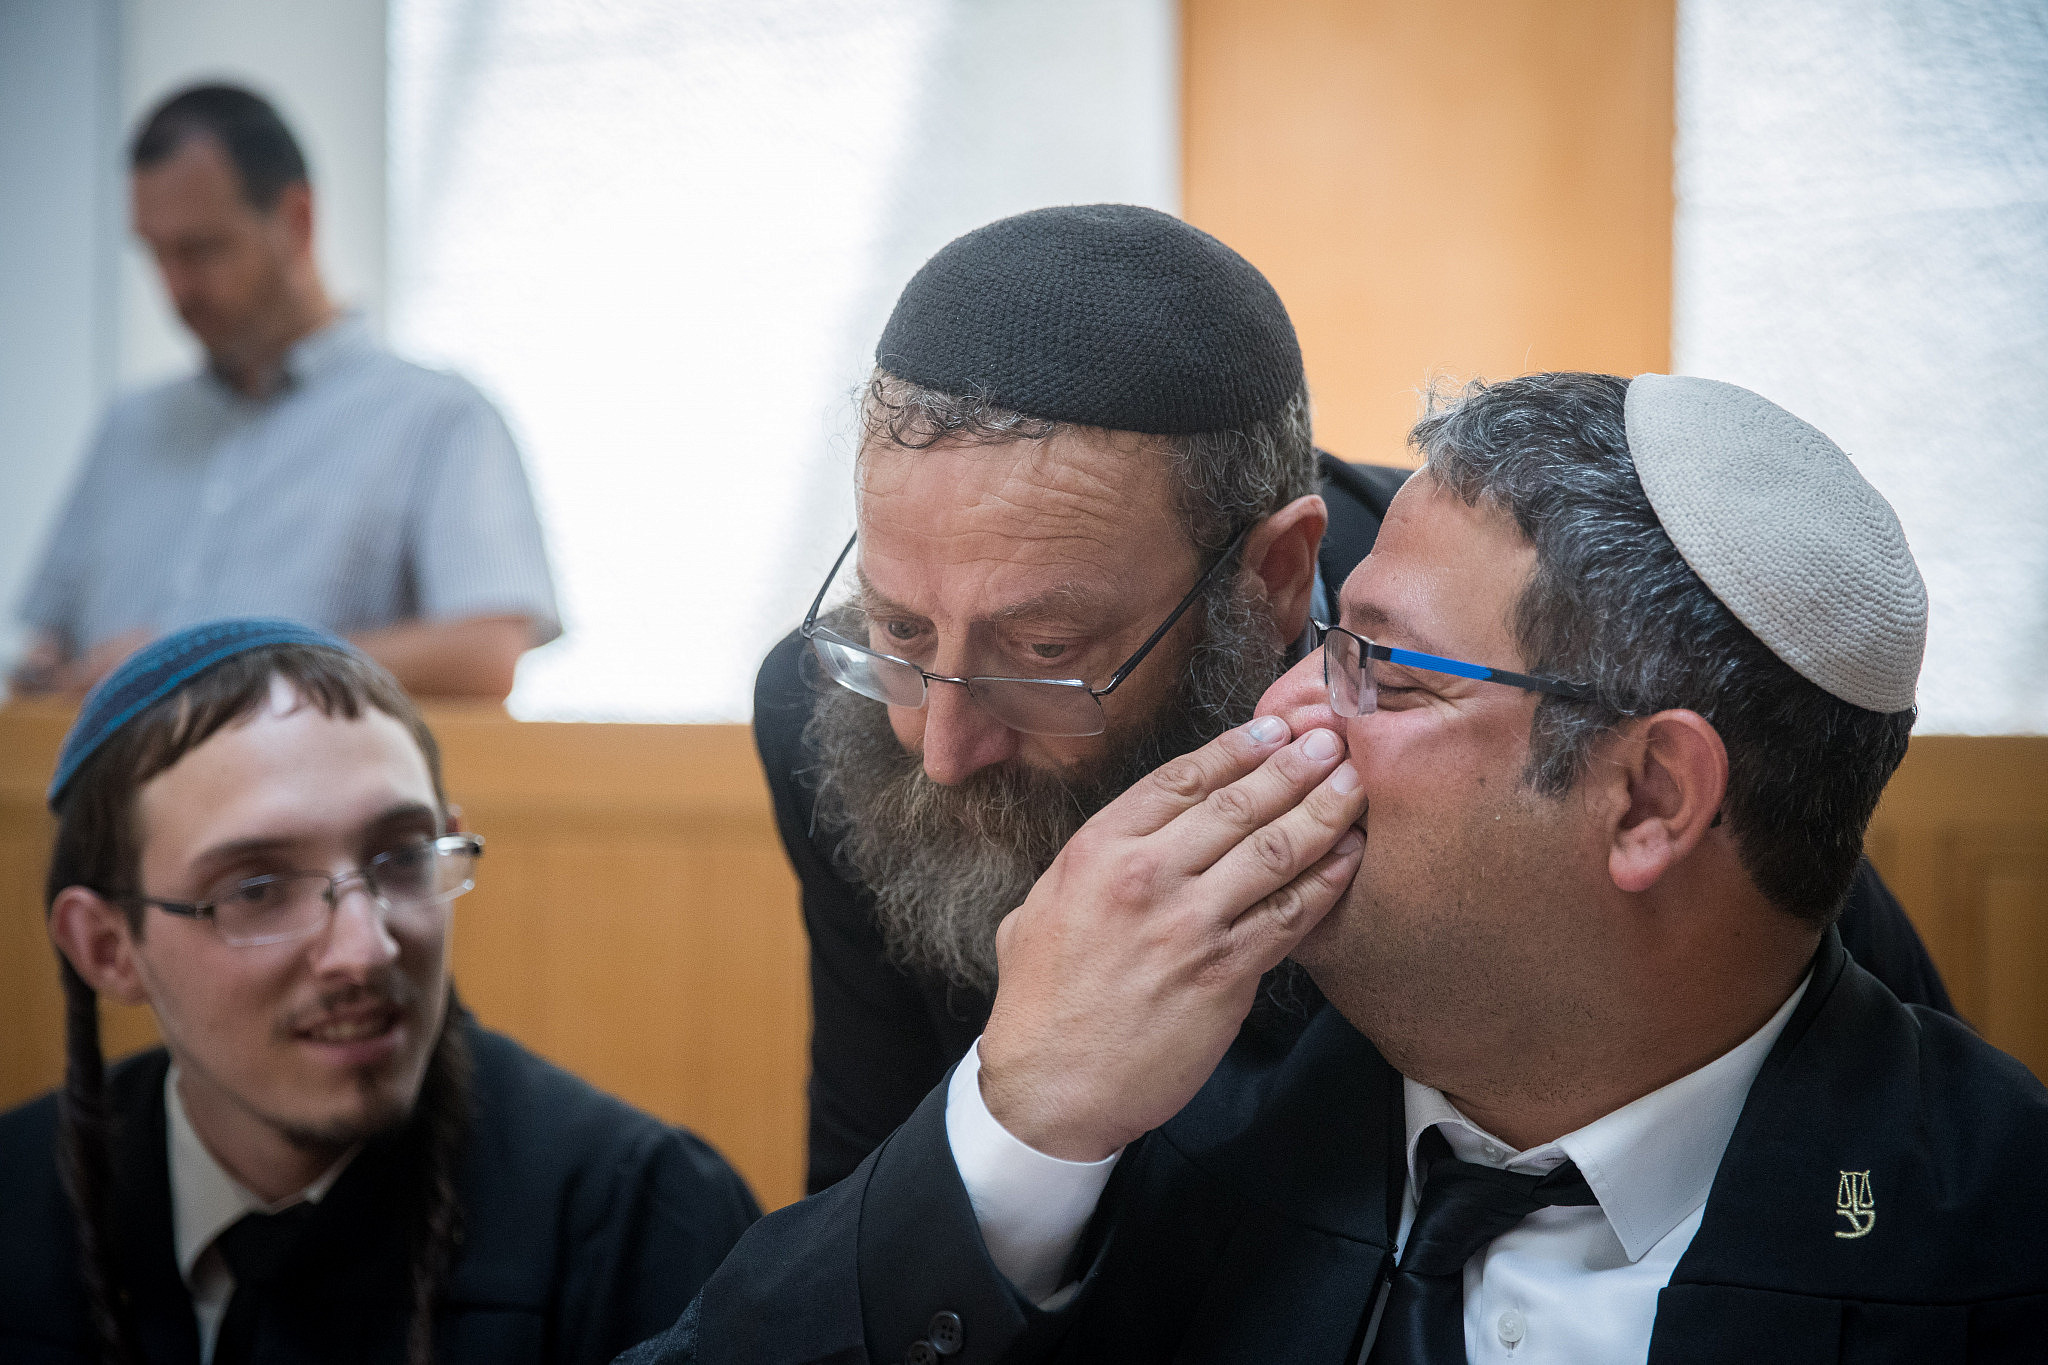 Otzma Yehudit party members Baruch Marzel and Itamar Ben-Gvir seen at a Supreme Court hearing in Jerusalem asking to disqualify the Palestinian-led Joint List party from running in the September election, August 22, 2019. (Yonatan Sindel/Flash90)